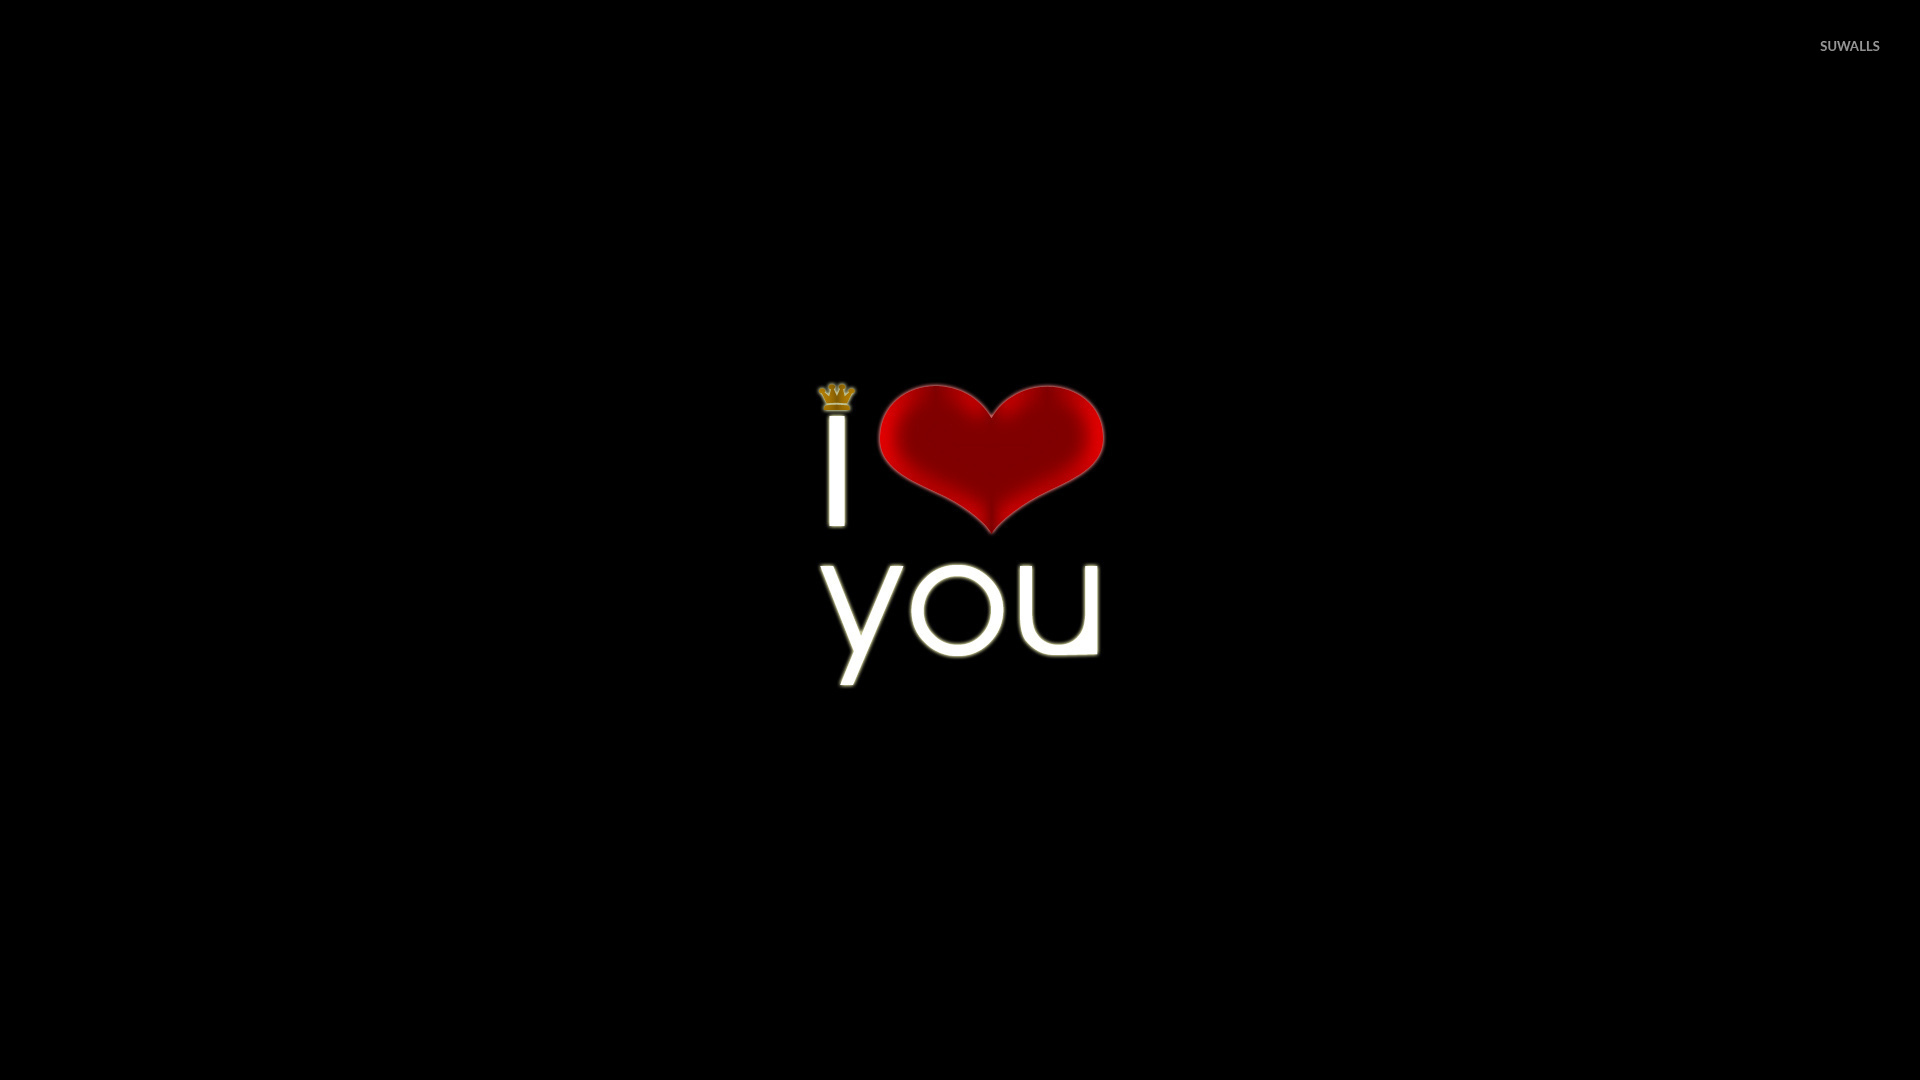 I love you [5] wallpaper